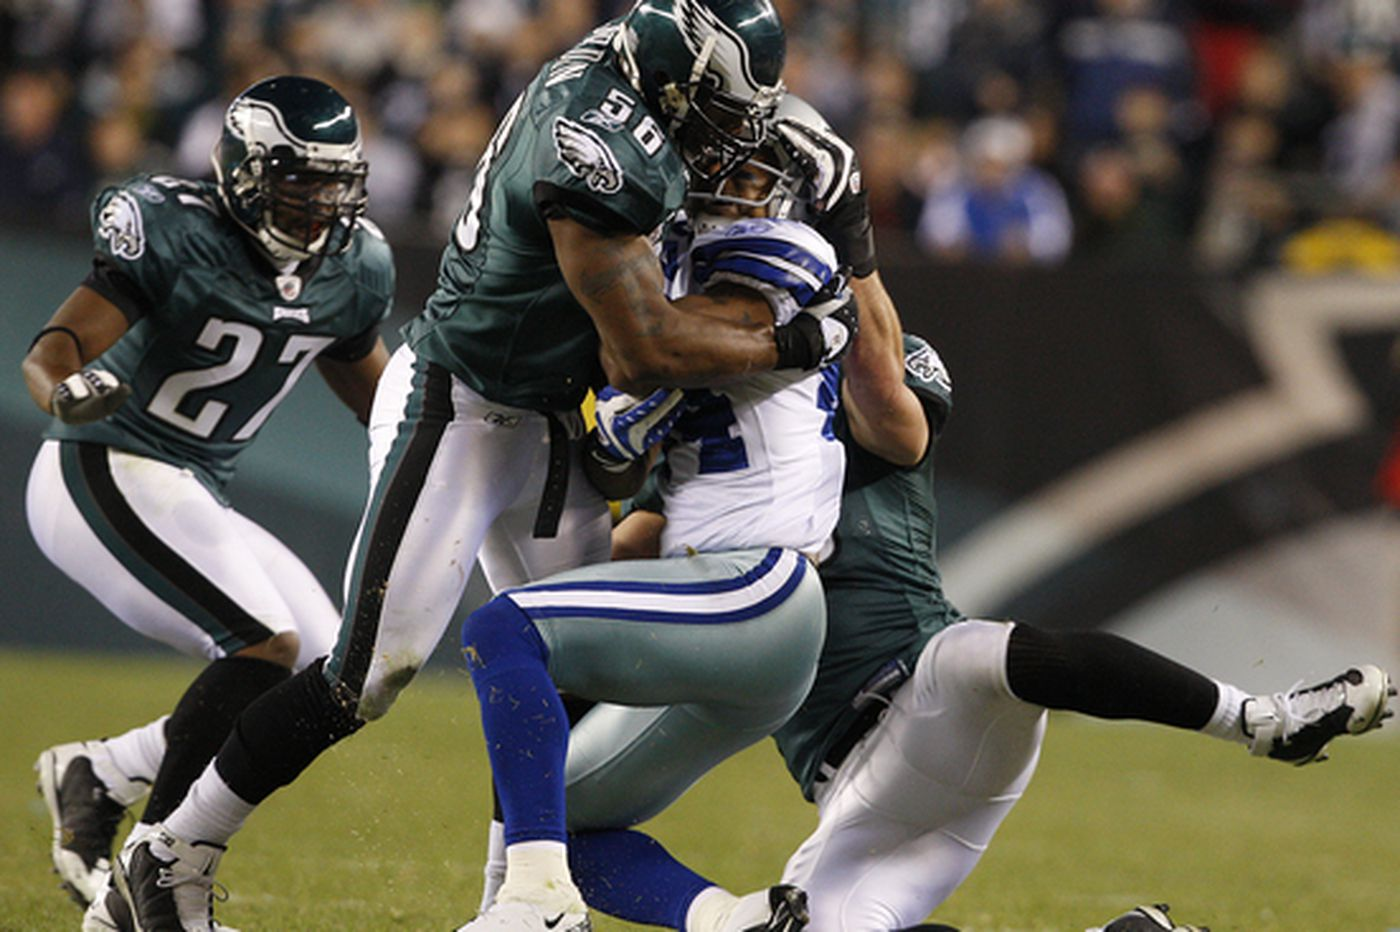 Paul Domowitch: Eagles defense among best in league going into playoffs